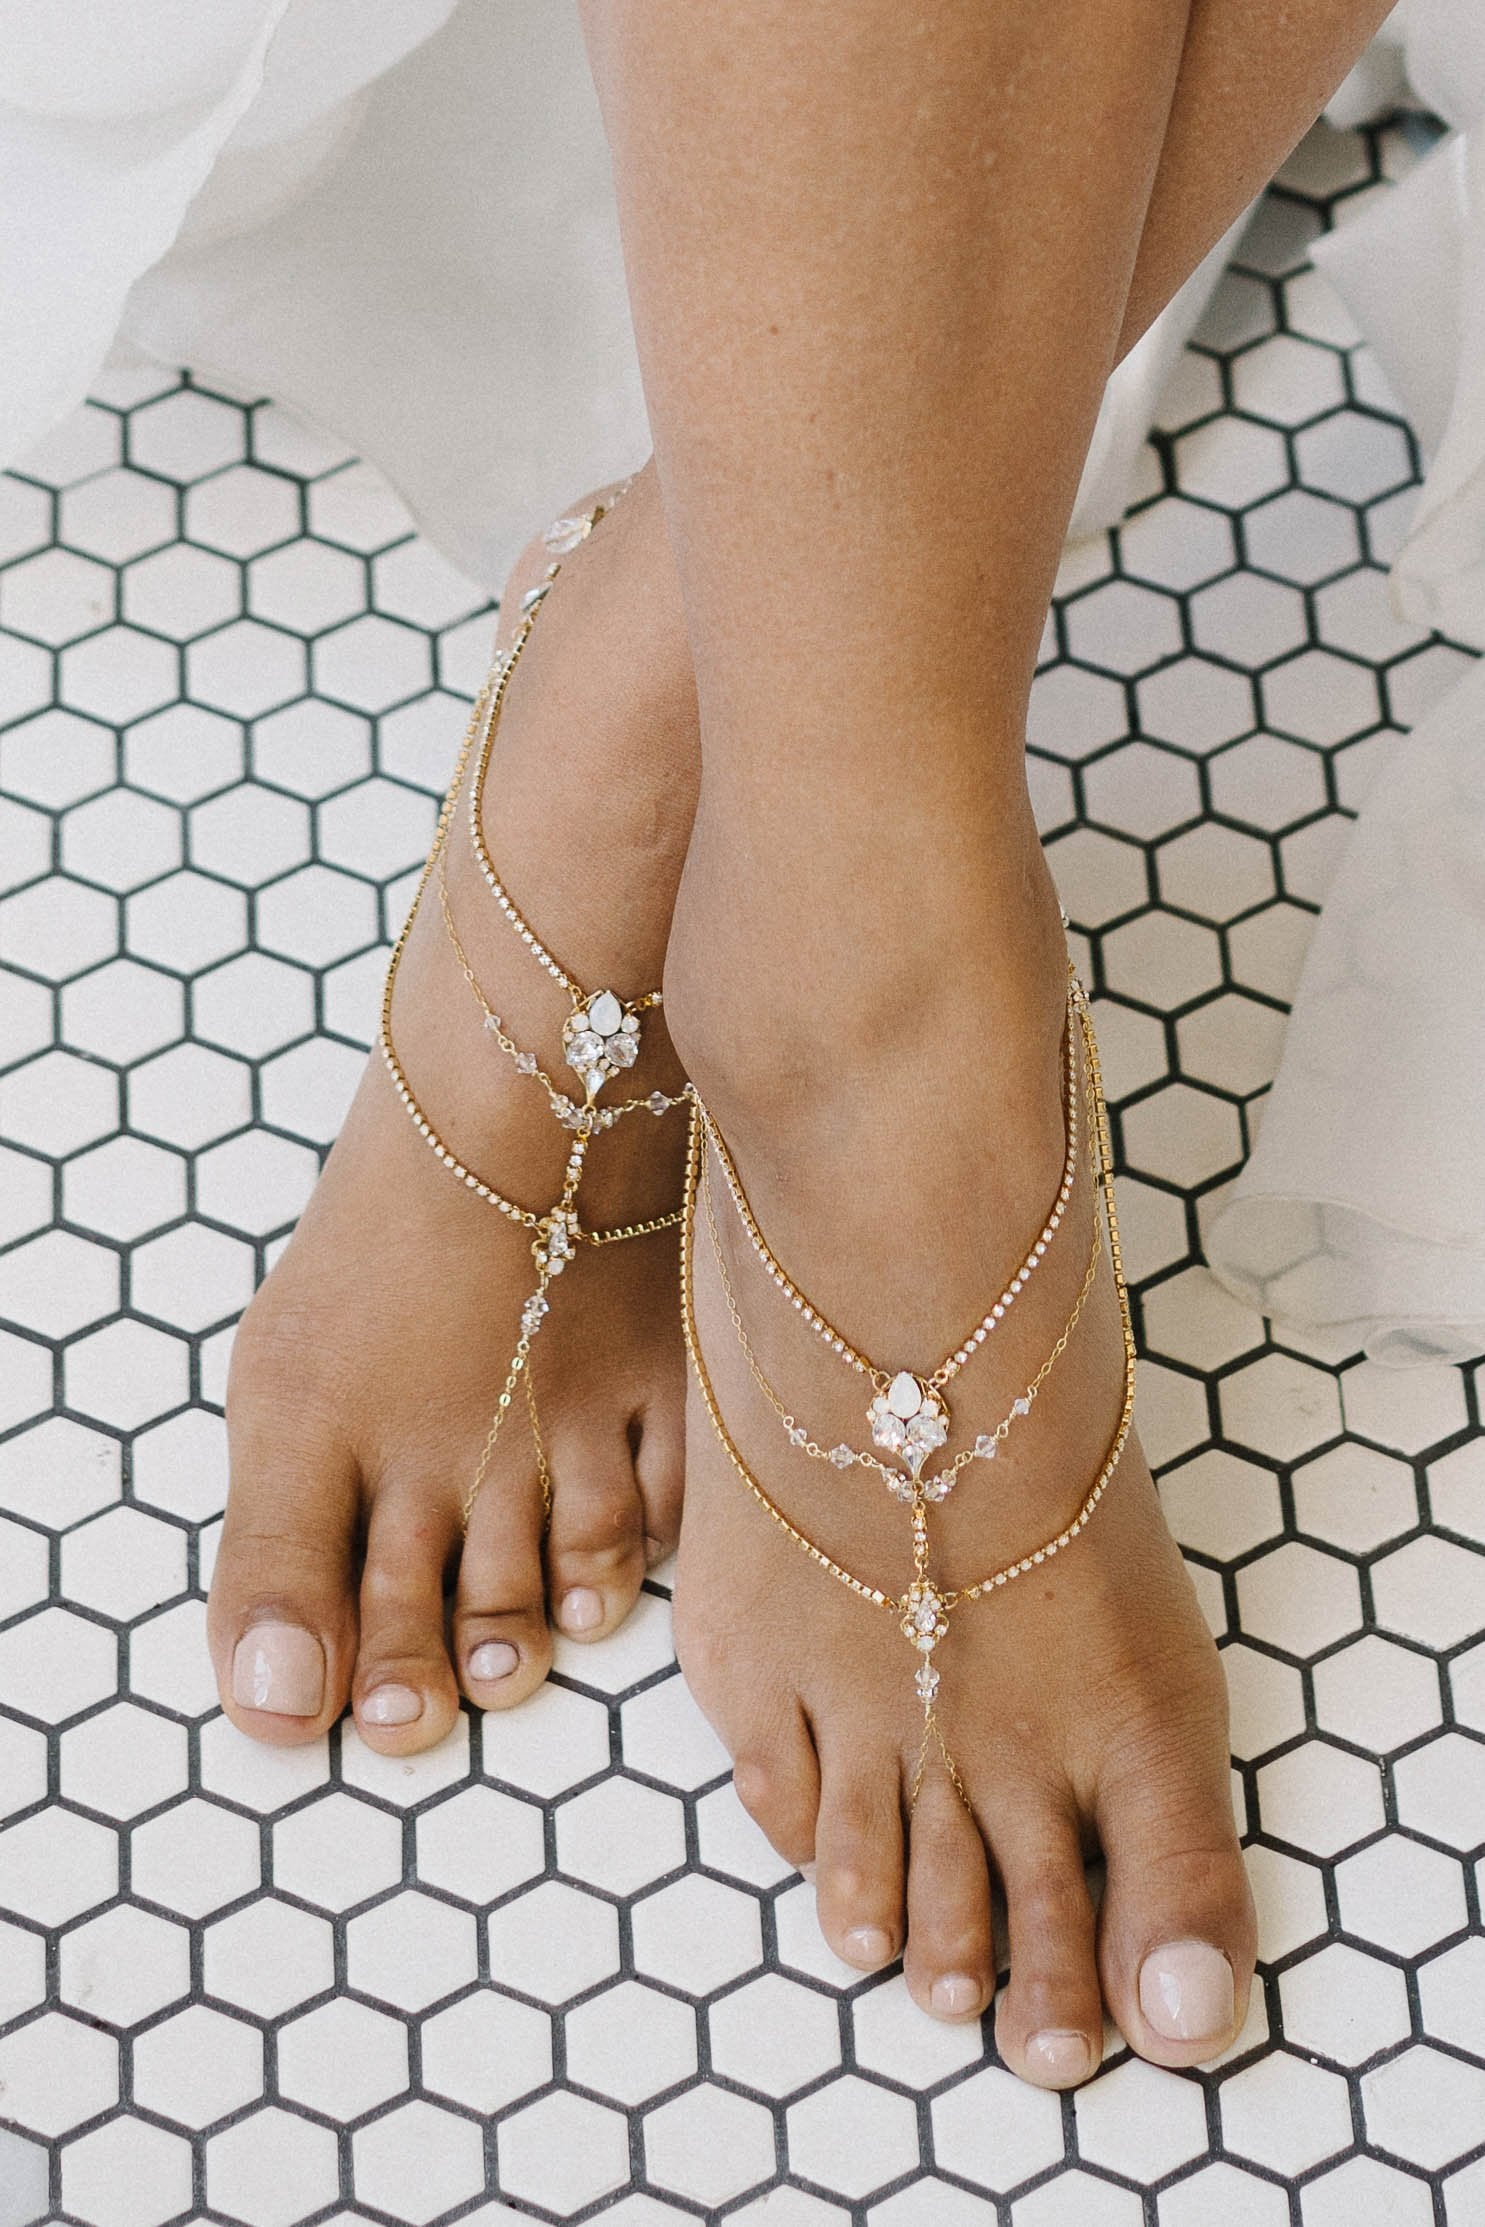 Two feet being shown wearing foot jewelry. The foot jewelry is gold in color with a mix of clear and opal Swarovski crystals. The foot jewelry has multiple strands that go across the top of each foot and each has a loop that is put over each foot's middle toe. Sara Gabriel.